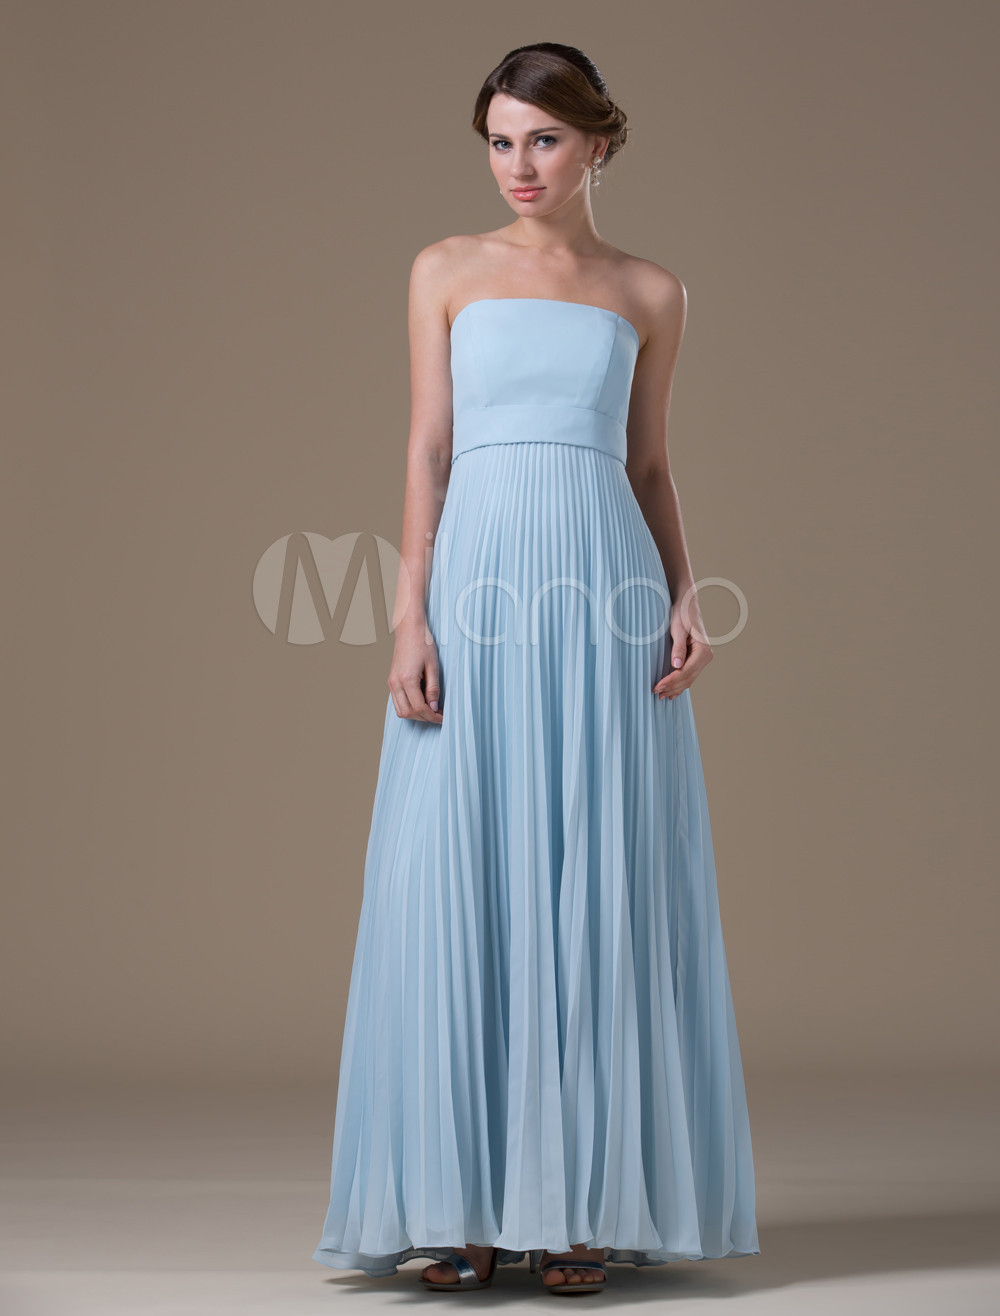 Apricot Gray A-line Strapless Chiffon Floor-length Womens Maternity Bridesmaid Dress